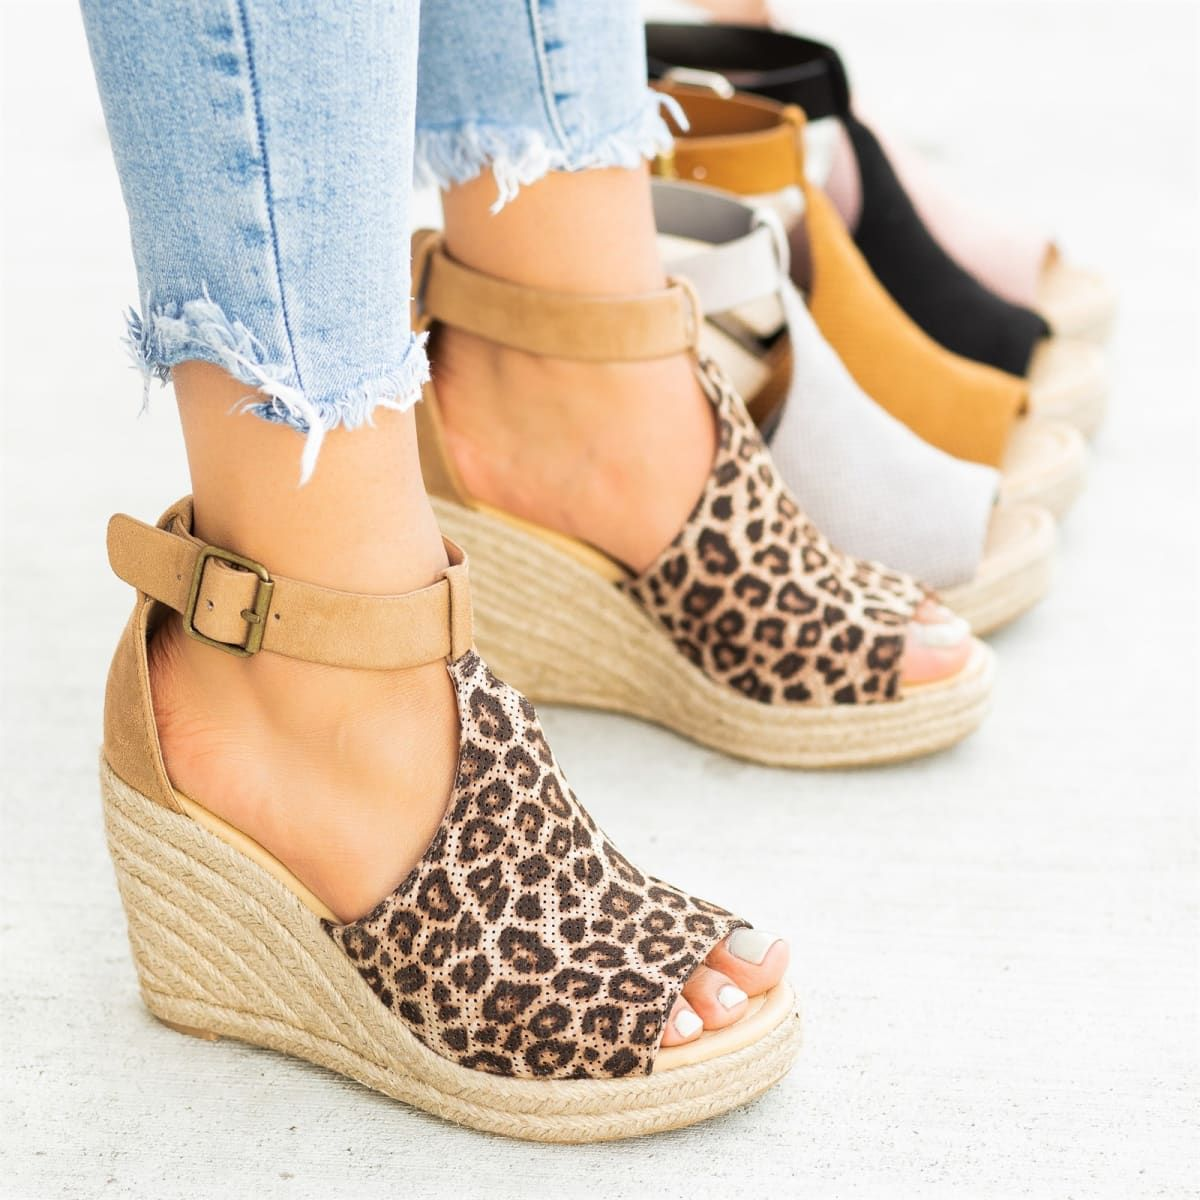 0b7687e66b1eb Chic Espadrille Wedges Spring Shoes, Fall Shoes, Summer Shoes, Wedge Heels,  Shoes